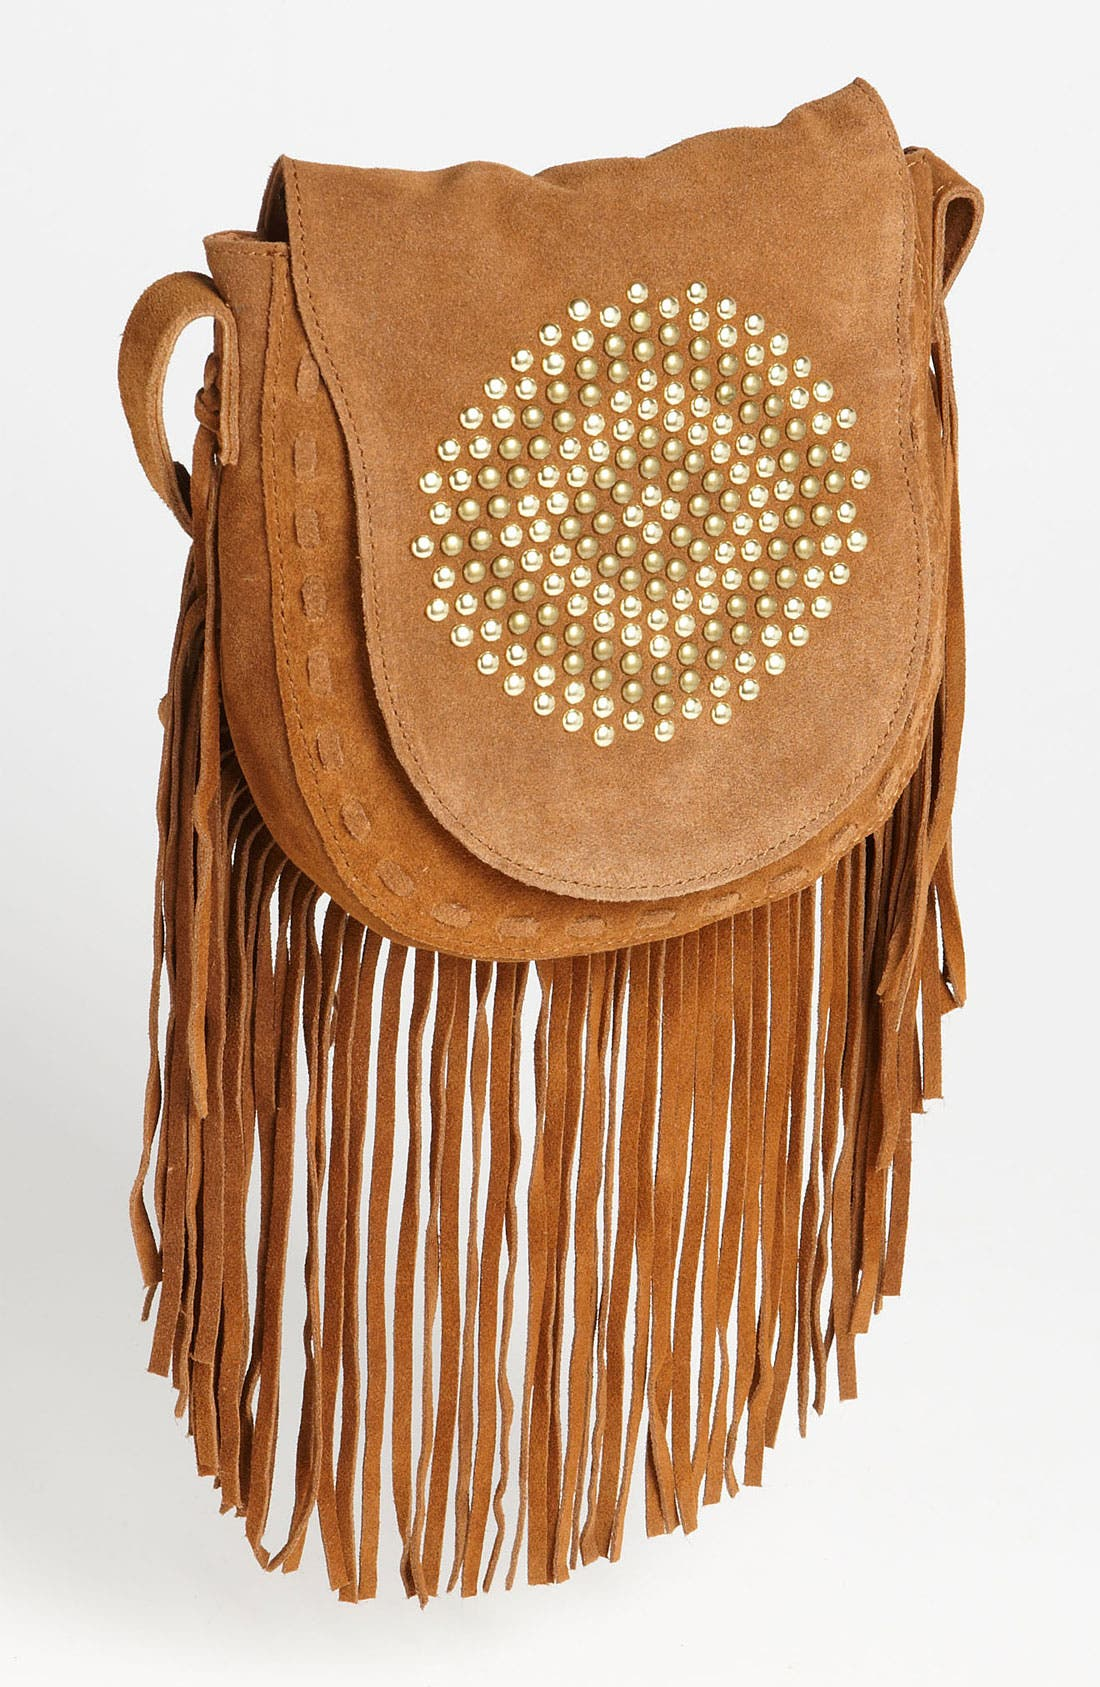 Alternate Image 1 Selected - Steve Madden 'On the Fringe' Crossbody Bag